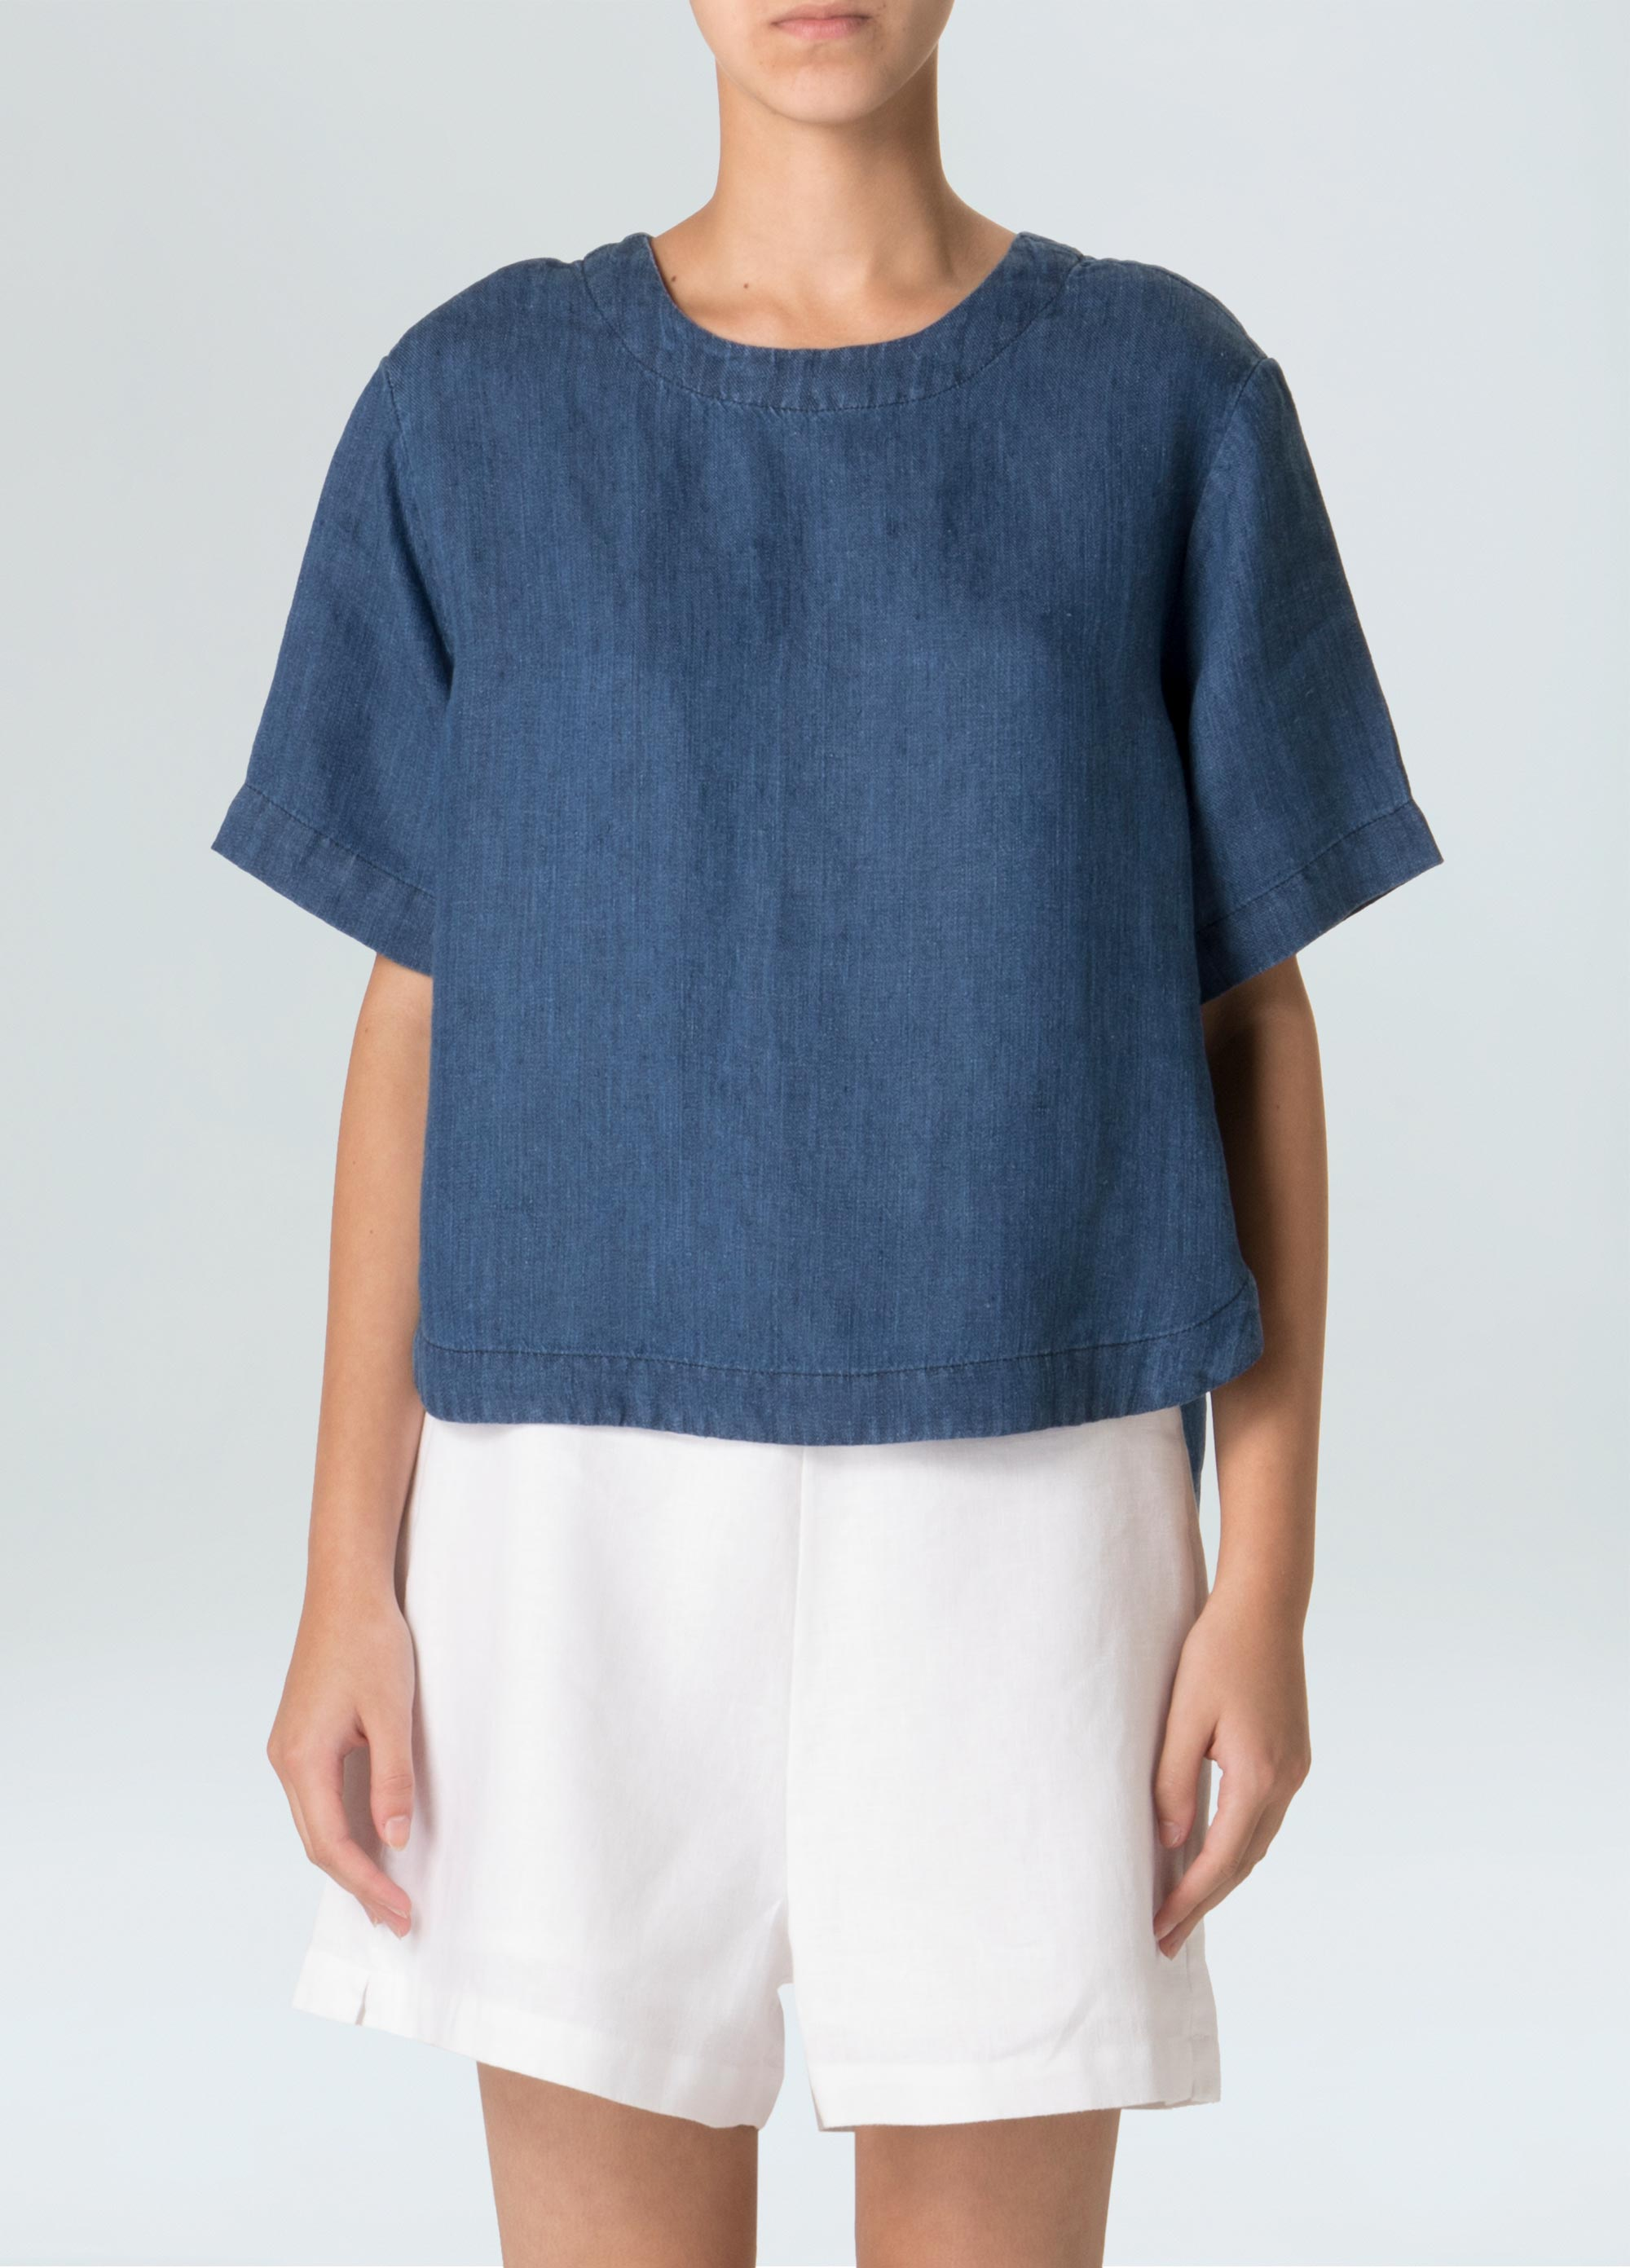 T-Shirt Linen Denim